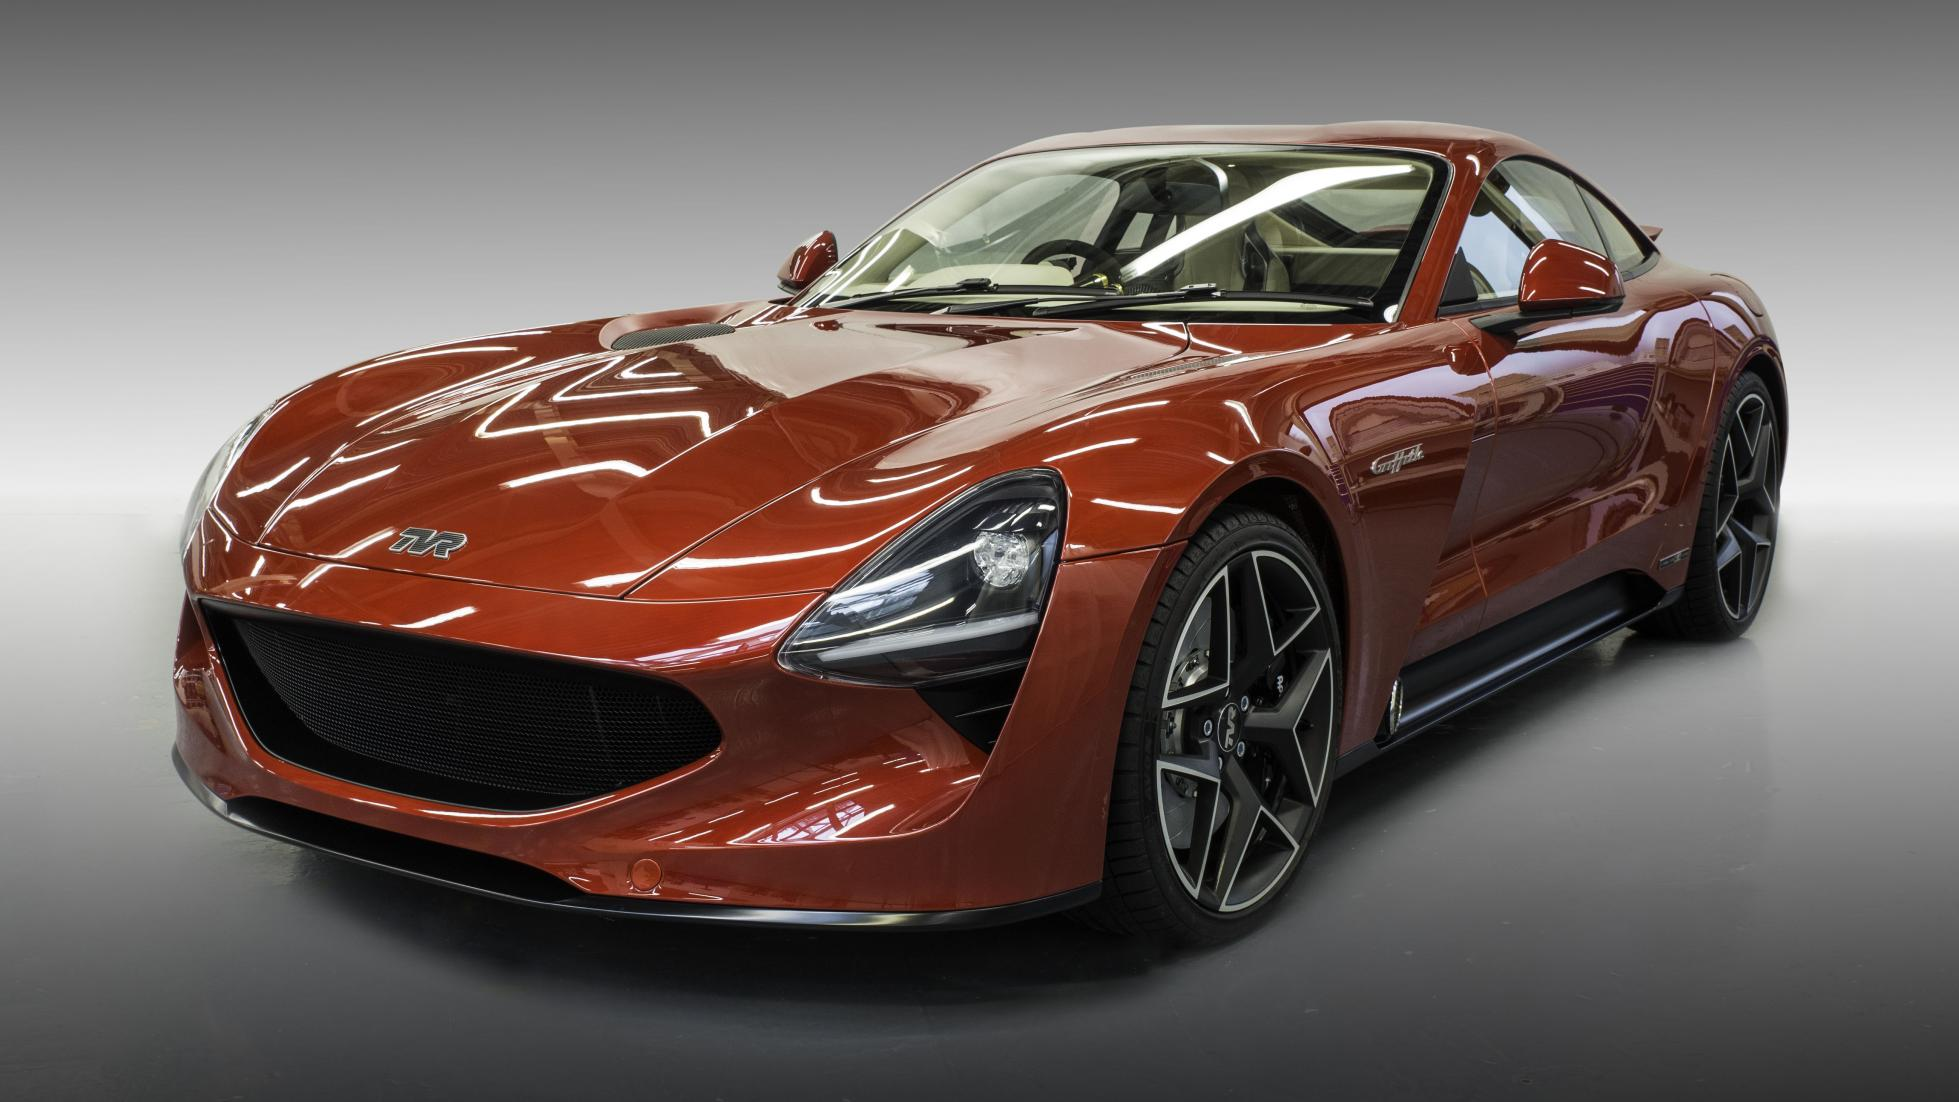 2018 tvr griffith is the 500 hp british sports car that. Black Bedroom Furniture Sets. Home Design Ideas